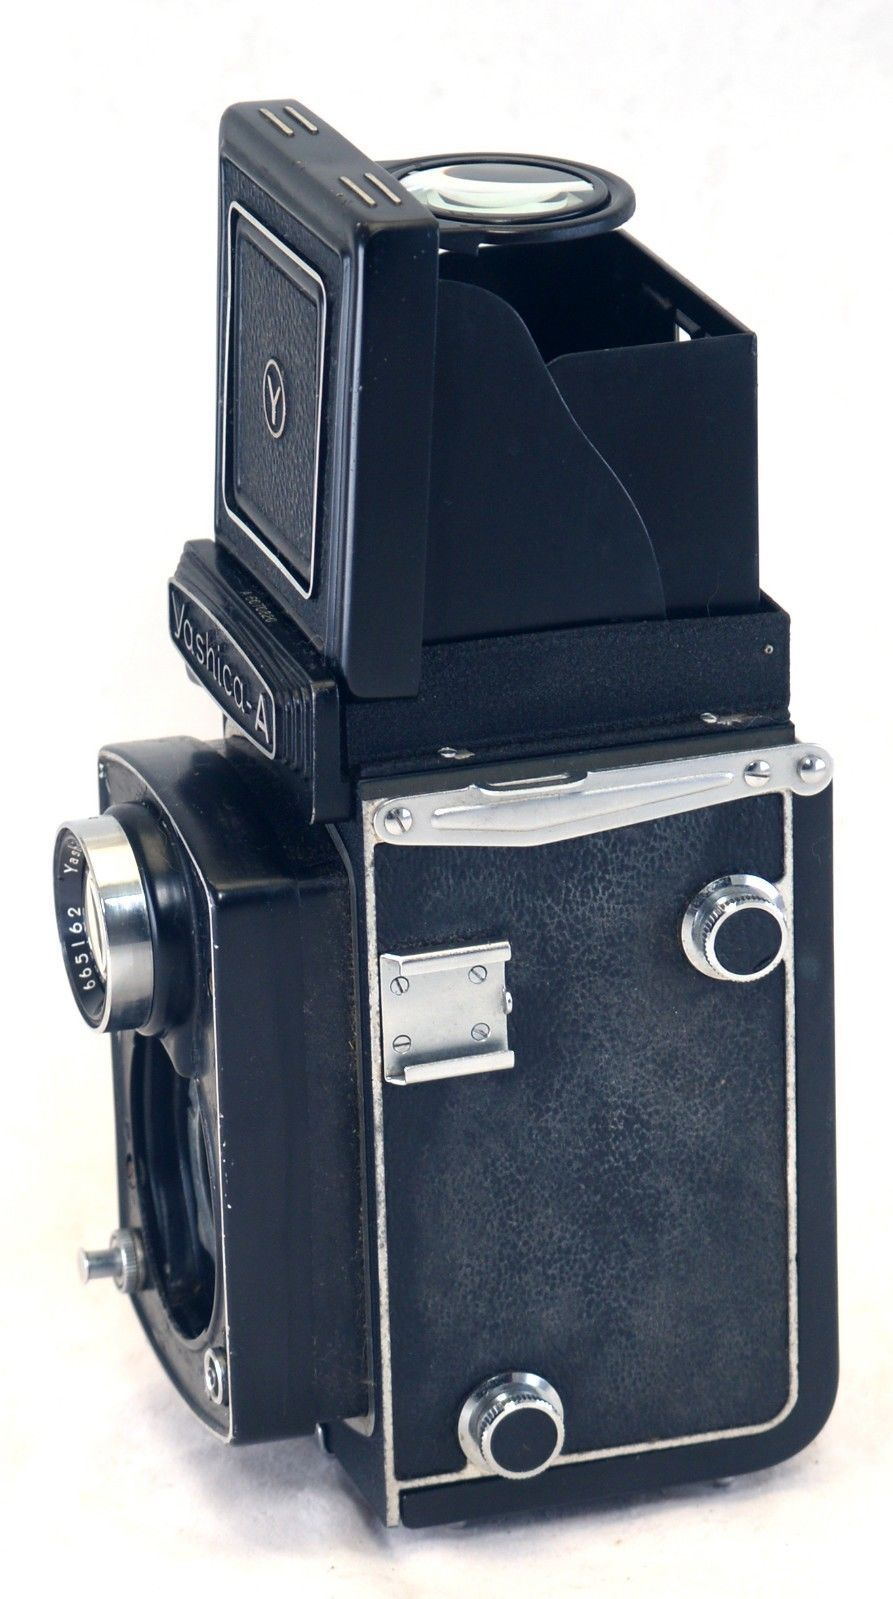 Vintage YASHICA A TLR Film Camera Body Japan  AS IS